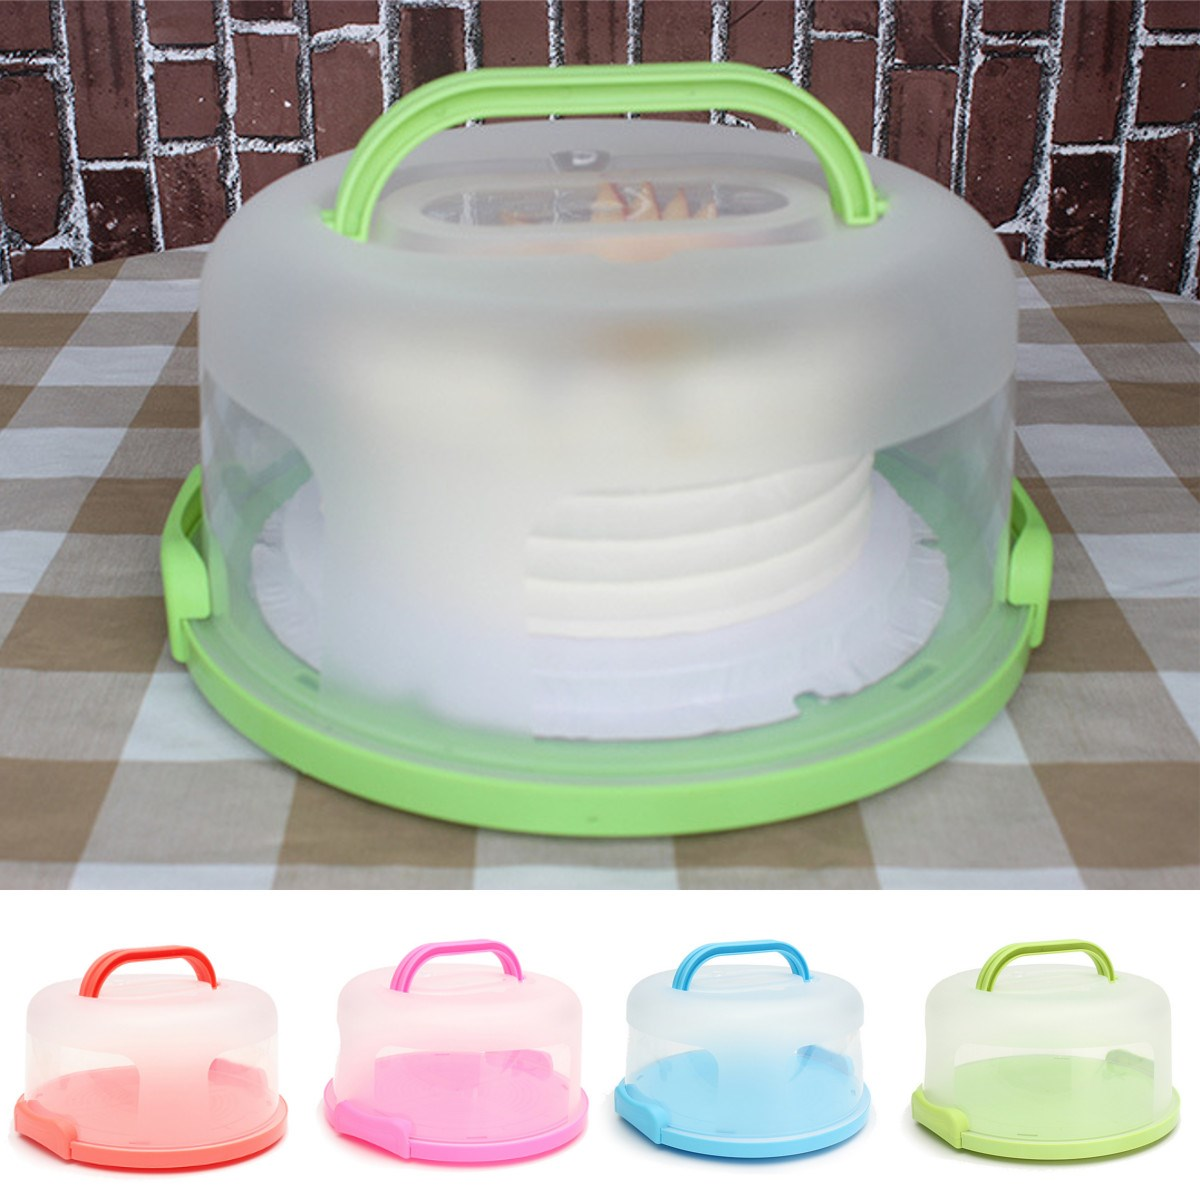 4 Colors Handheld Round Cake Carrier Plastic Storage ...